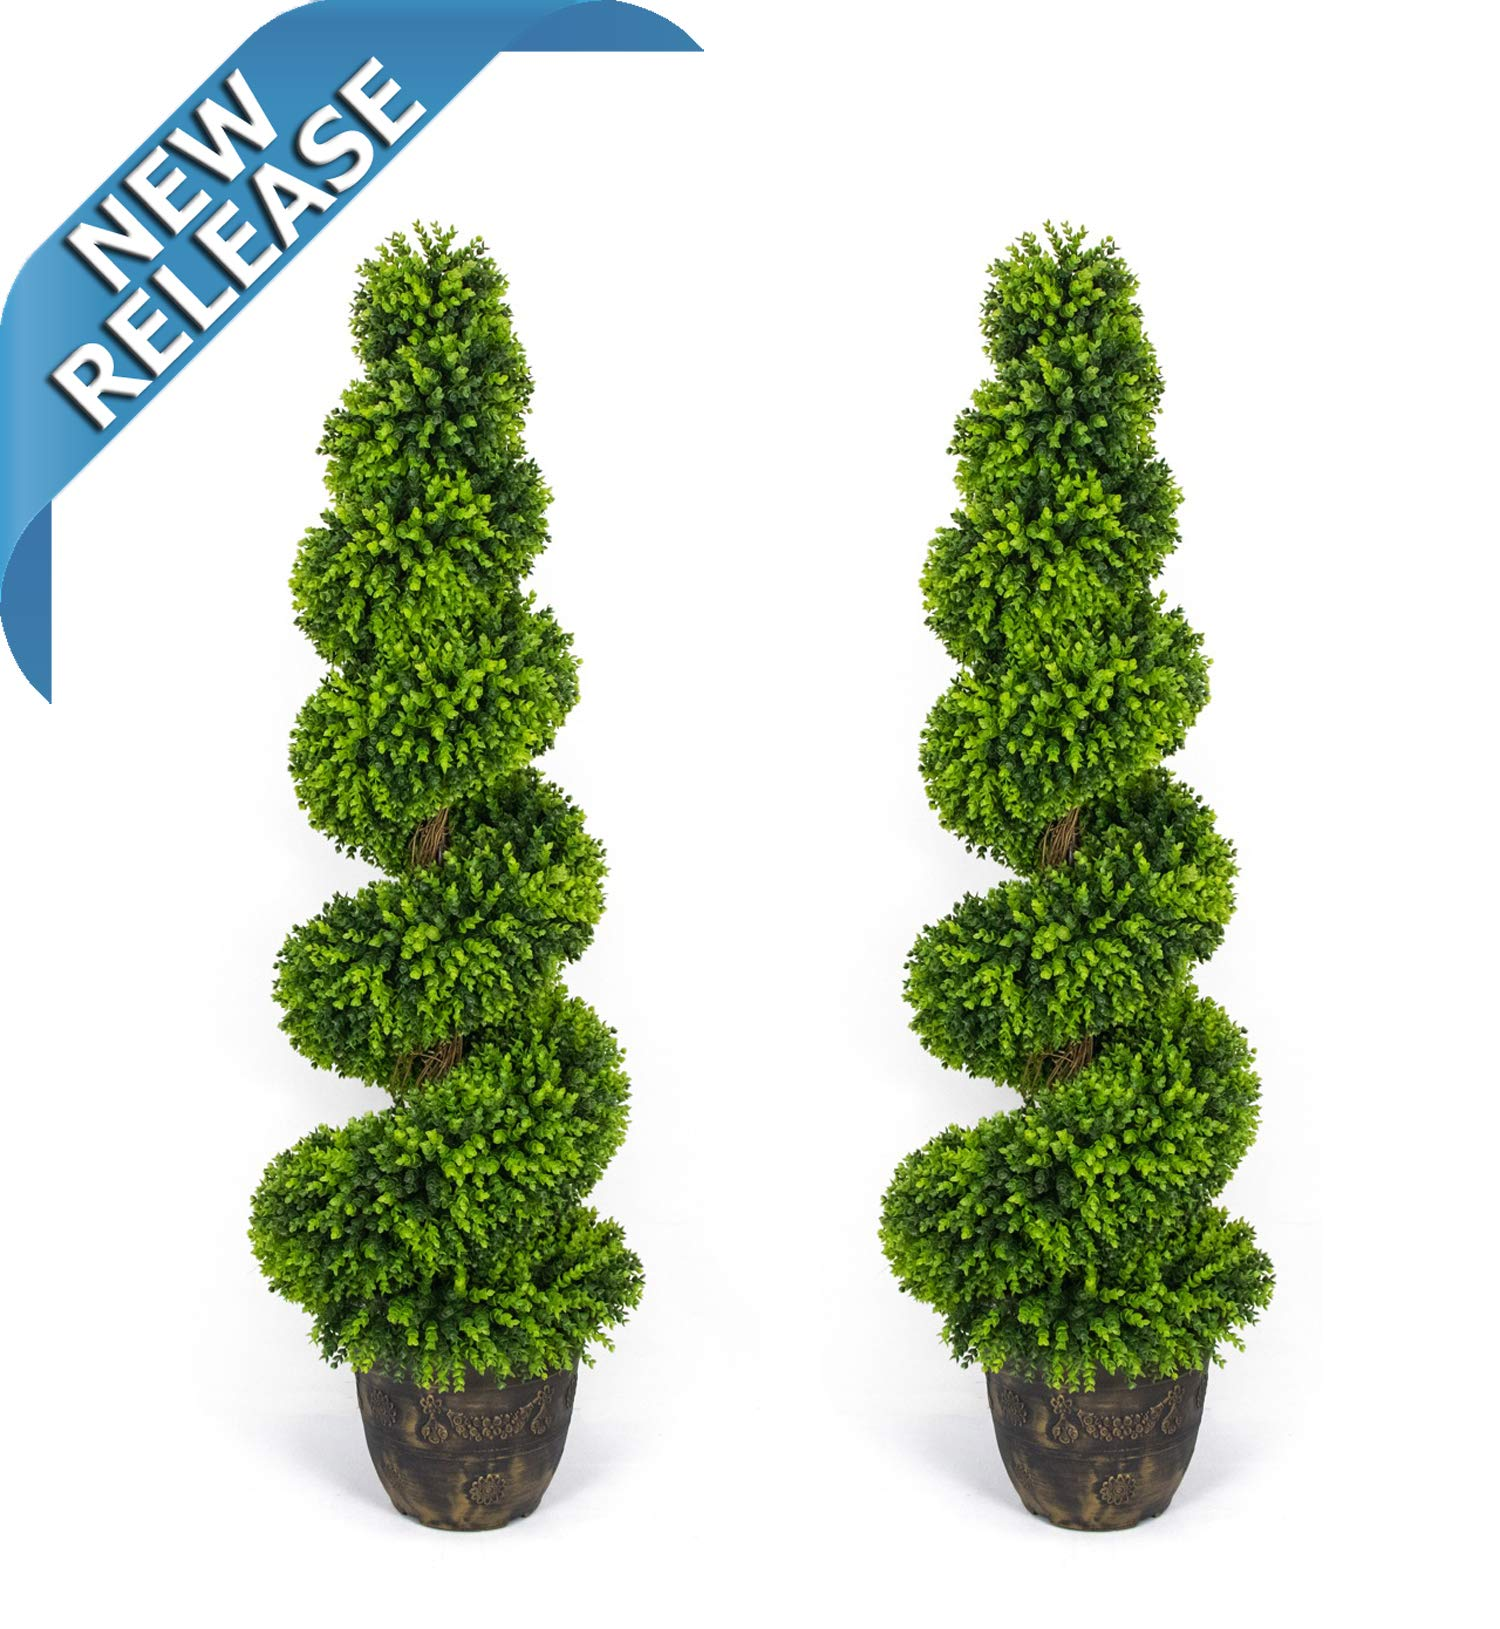 AMERIQUE Pair Gorgeous 5 Feet Wide and Dense Boxwood Spiral Topiary Artificial Trees Plant with UV Protection with Decorative Pots, Feel Real Technology, Super Quality, 5' Each, Green by AMERIQUE